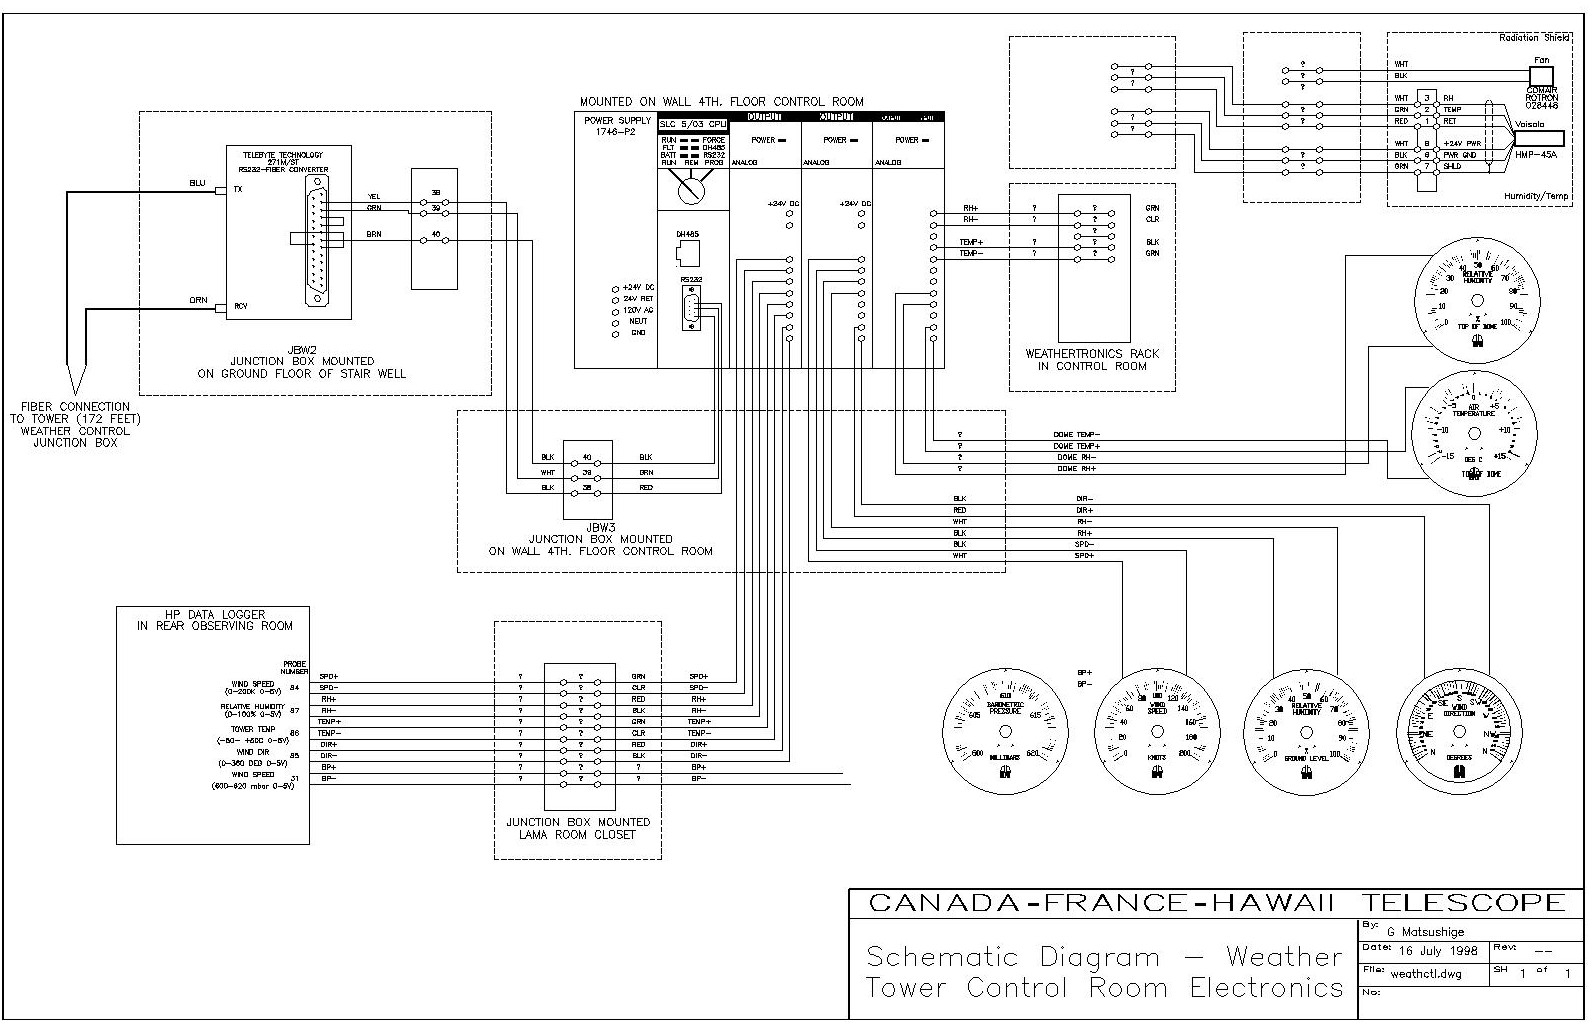 allen bradley stack light wiring diagram Download-allen bradley motor control wiring diagrams health shop me rh health shop me allen bradley 855t wiring diagram wire diagram for allen bradley b8pon a 19-s